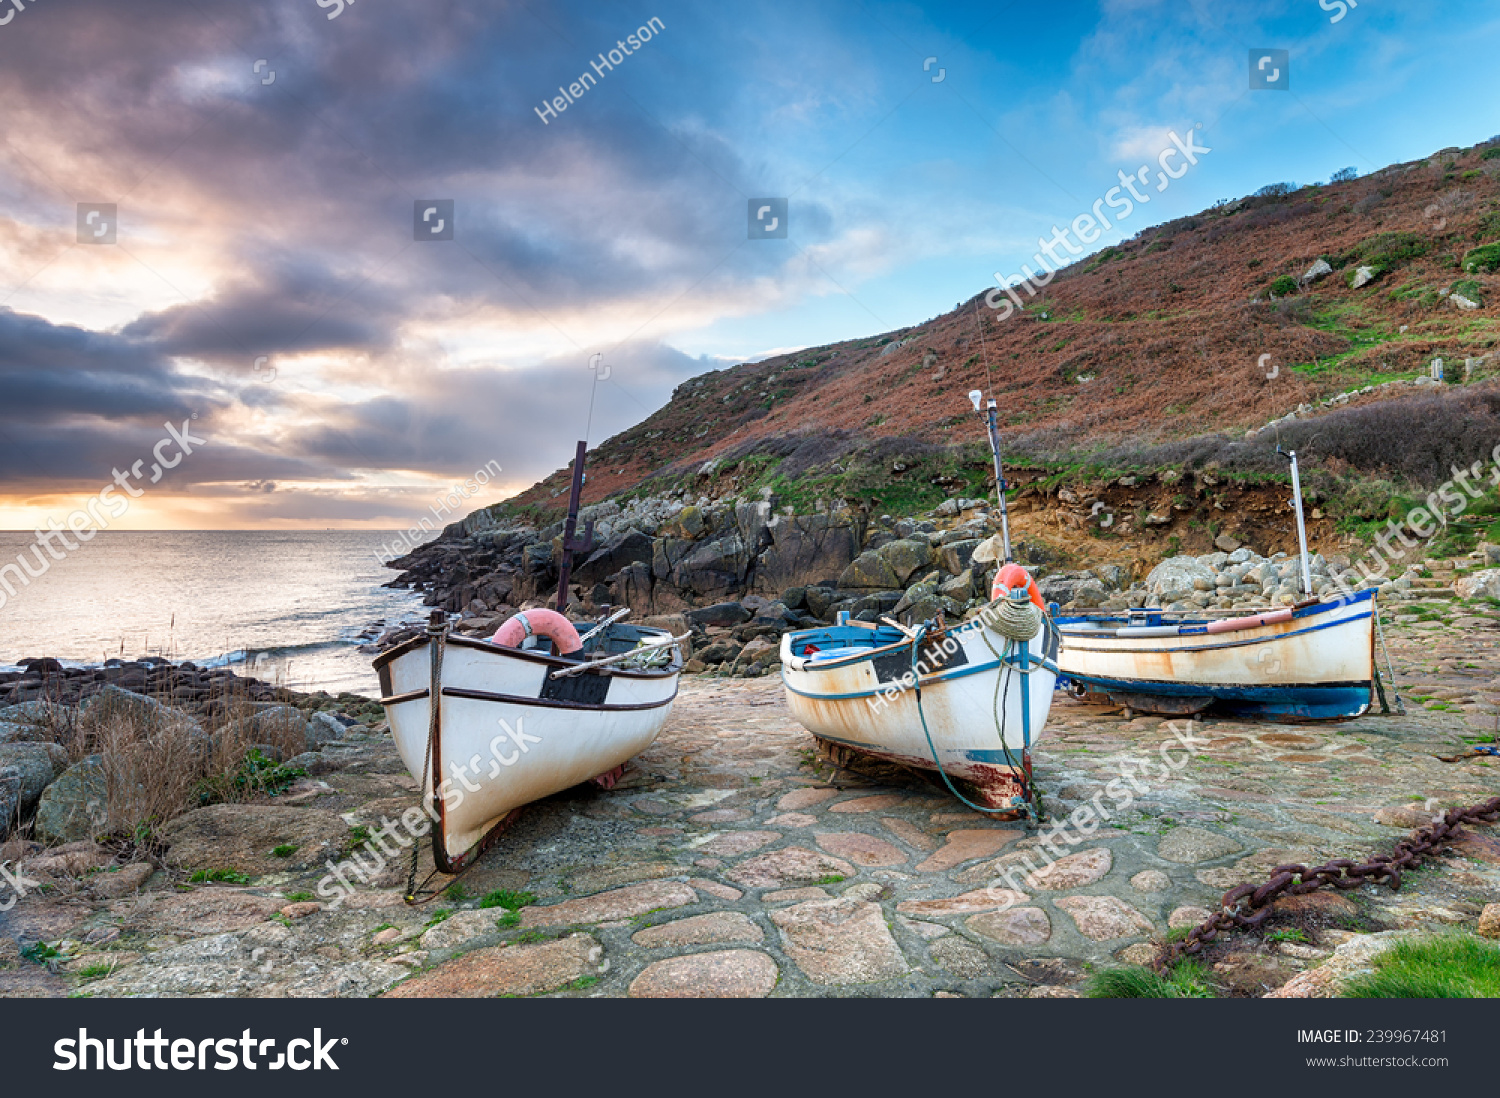 Fishing boats on beach penberth cove stock photo 239967481 for Where to get a fishing license near me